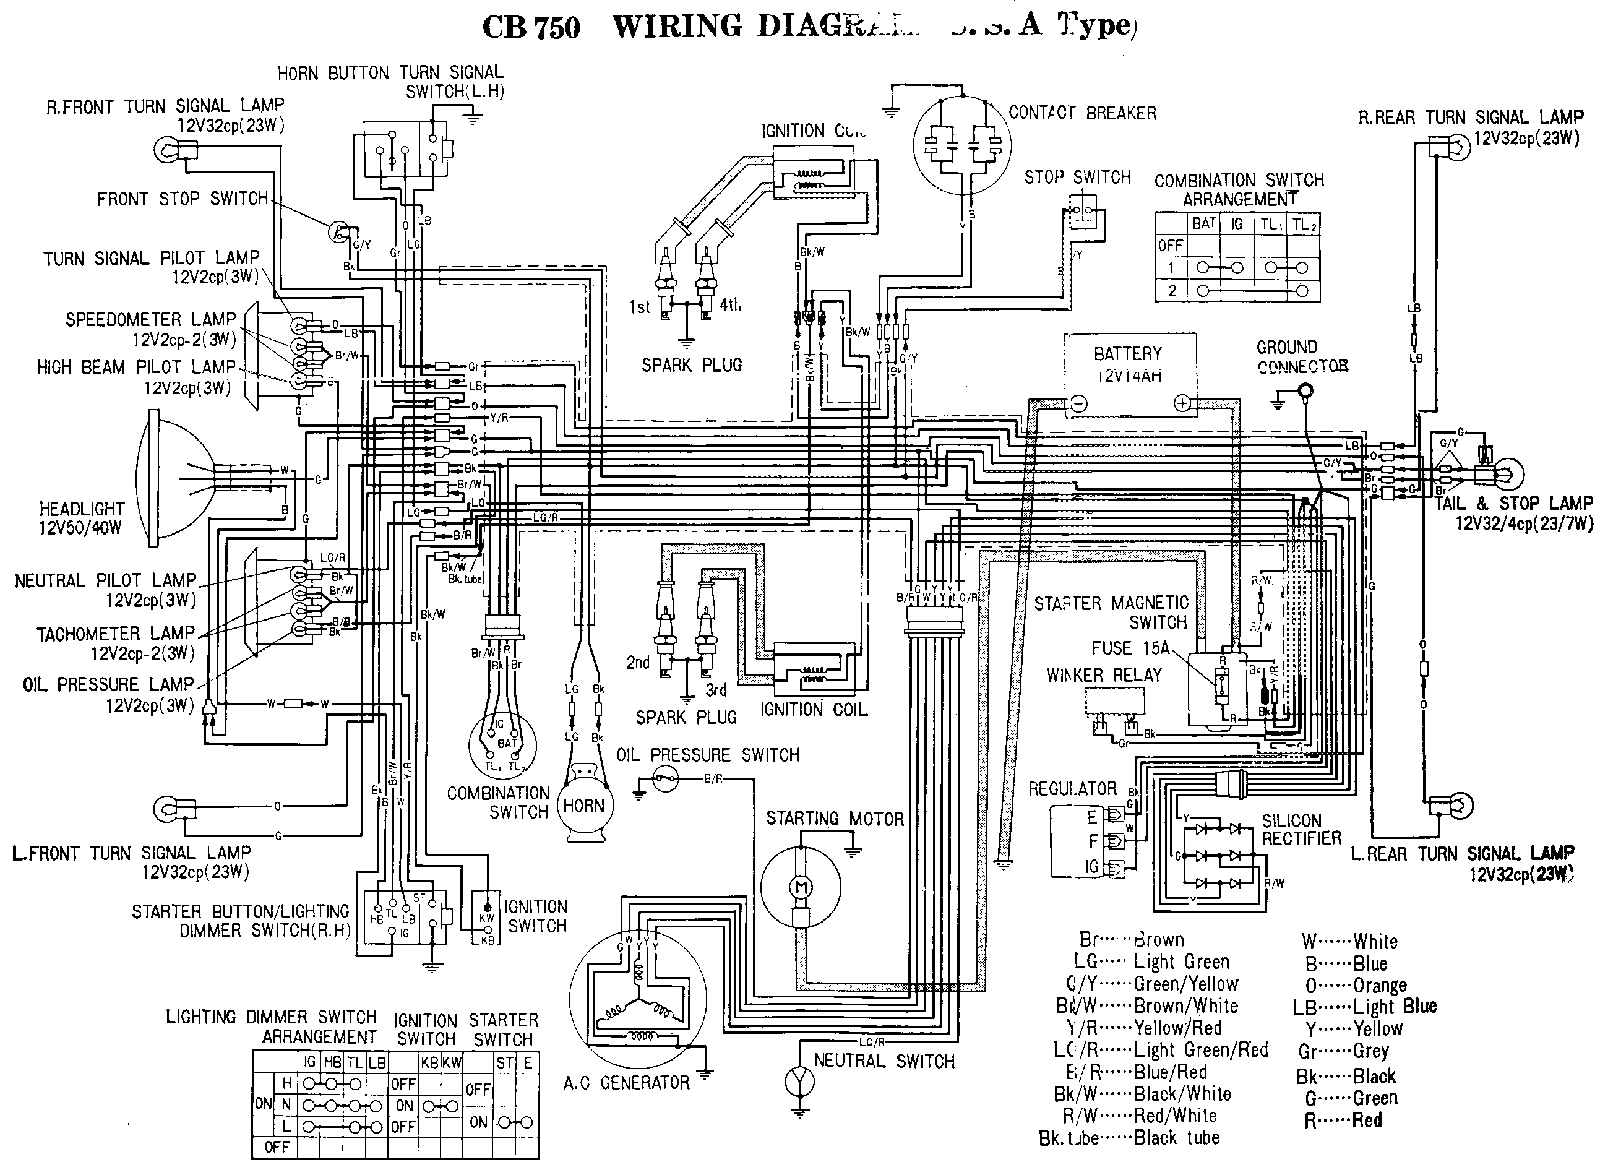 picture 6 of 6 from honda cb750 wiring diagrams 1974 honda cb750 wiring diagram